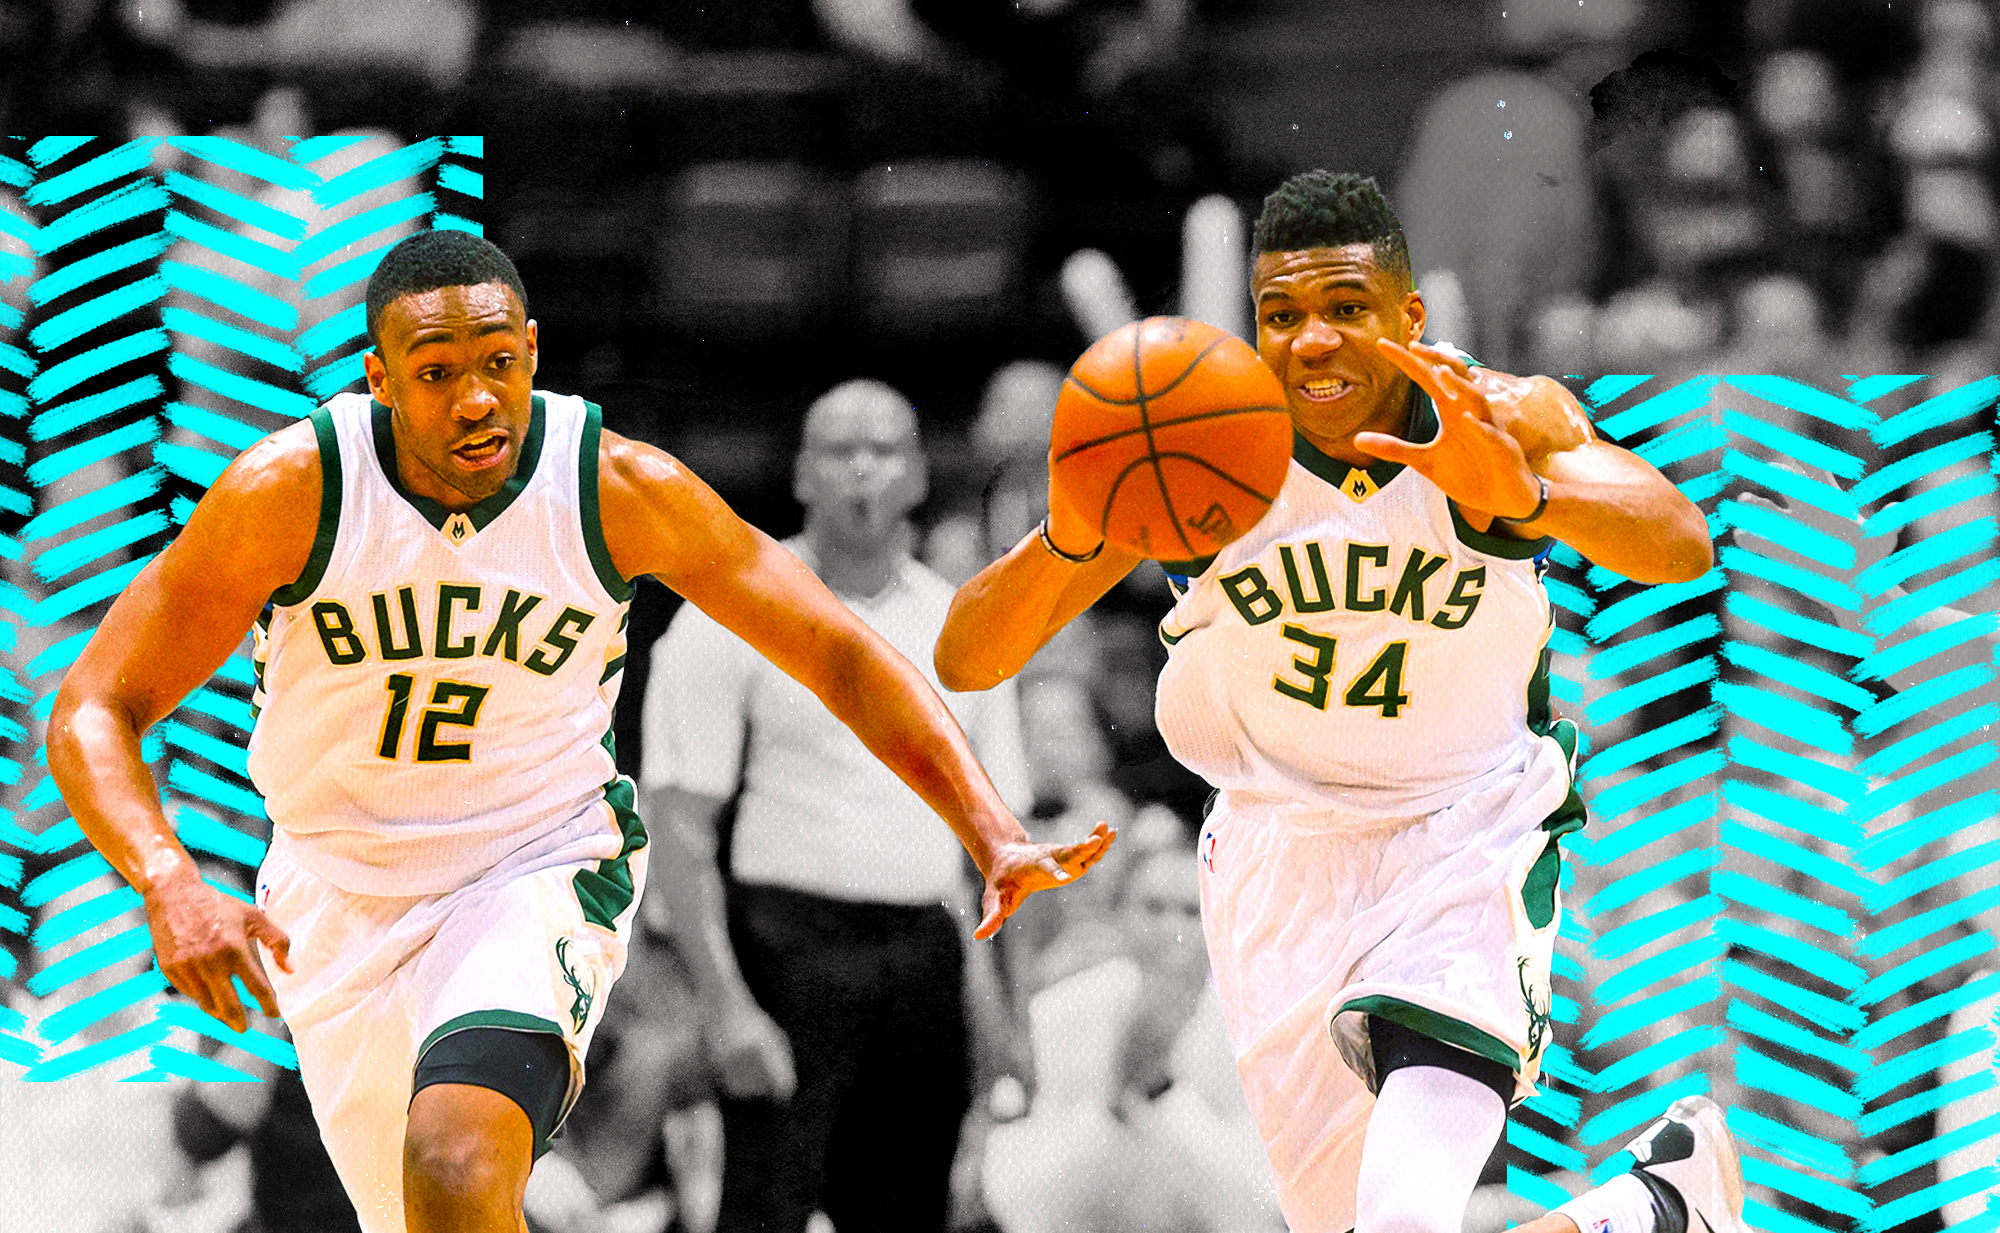 Getting lucky in the NBA Draft goes beyond the lottery. Look at the Bucks